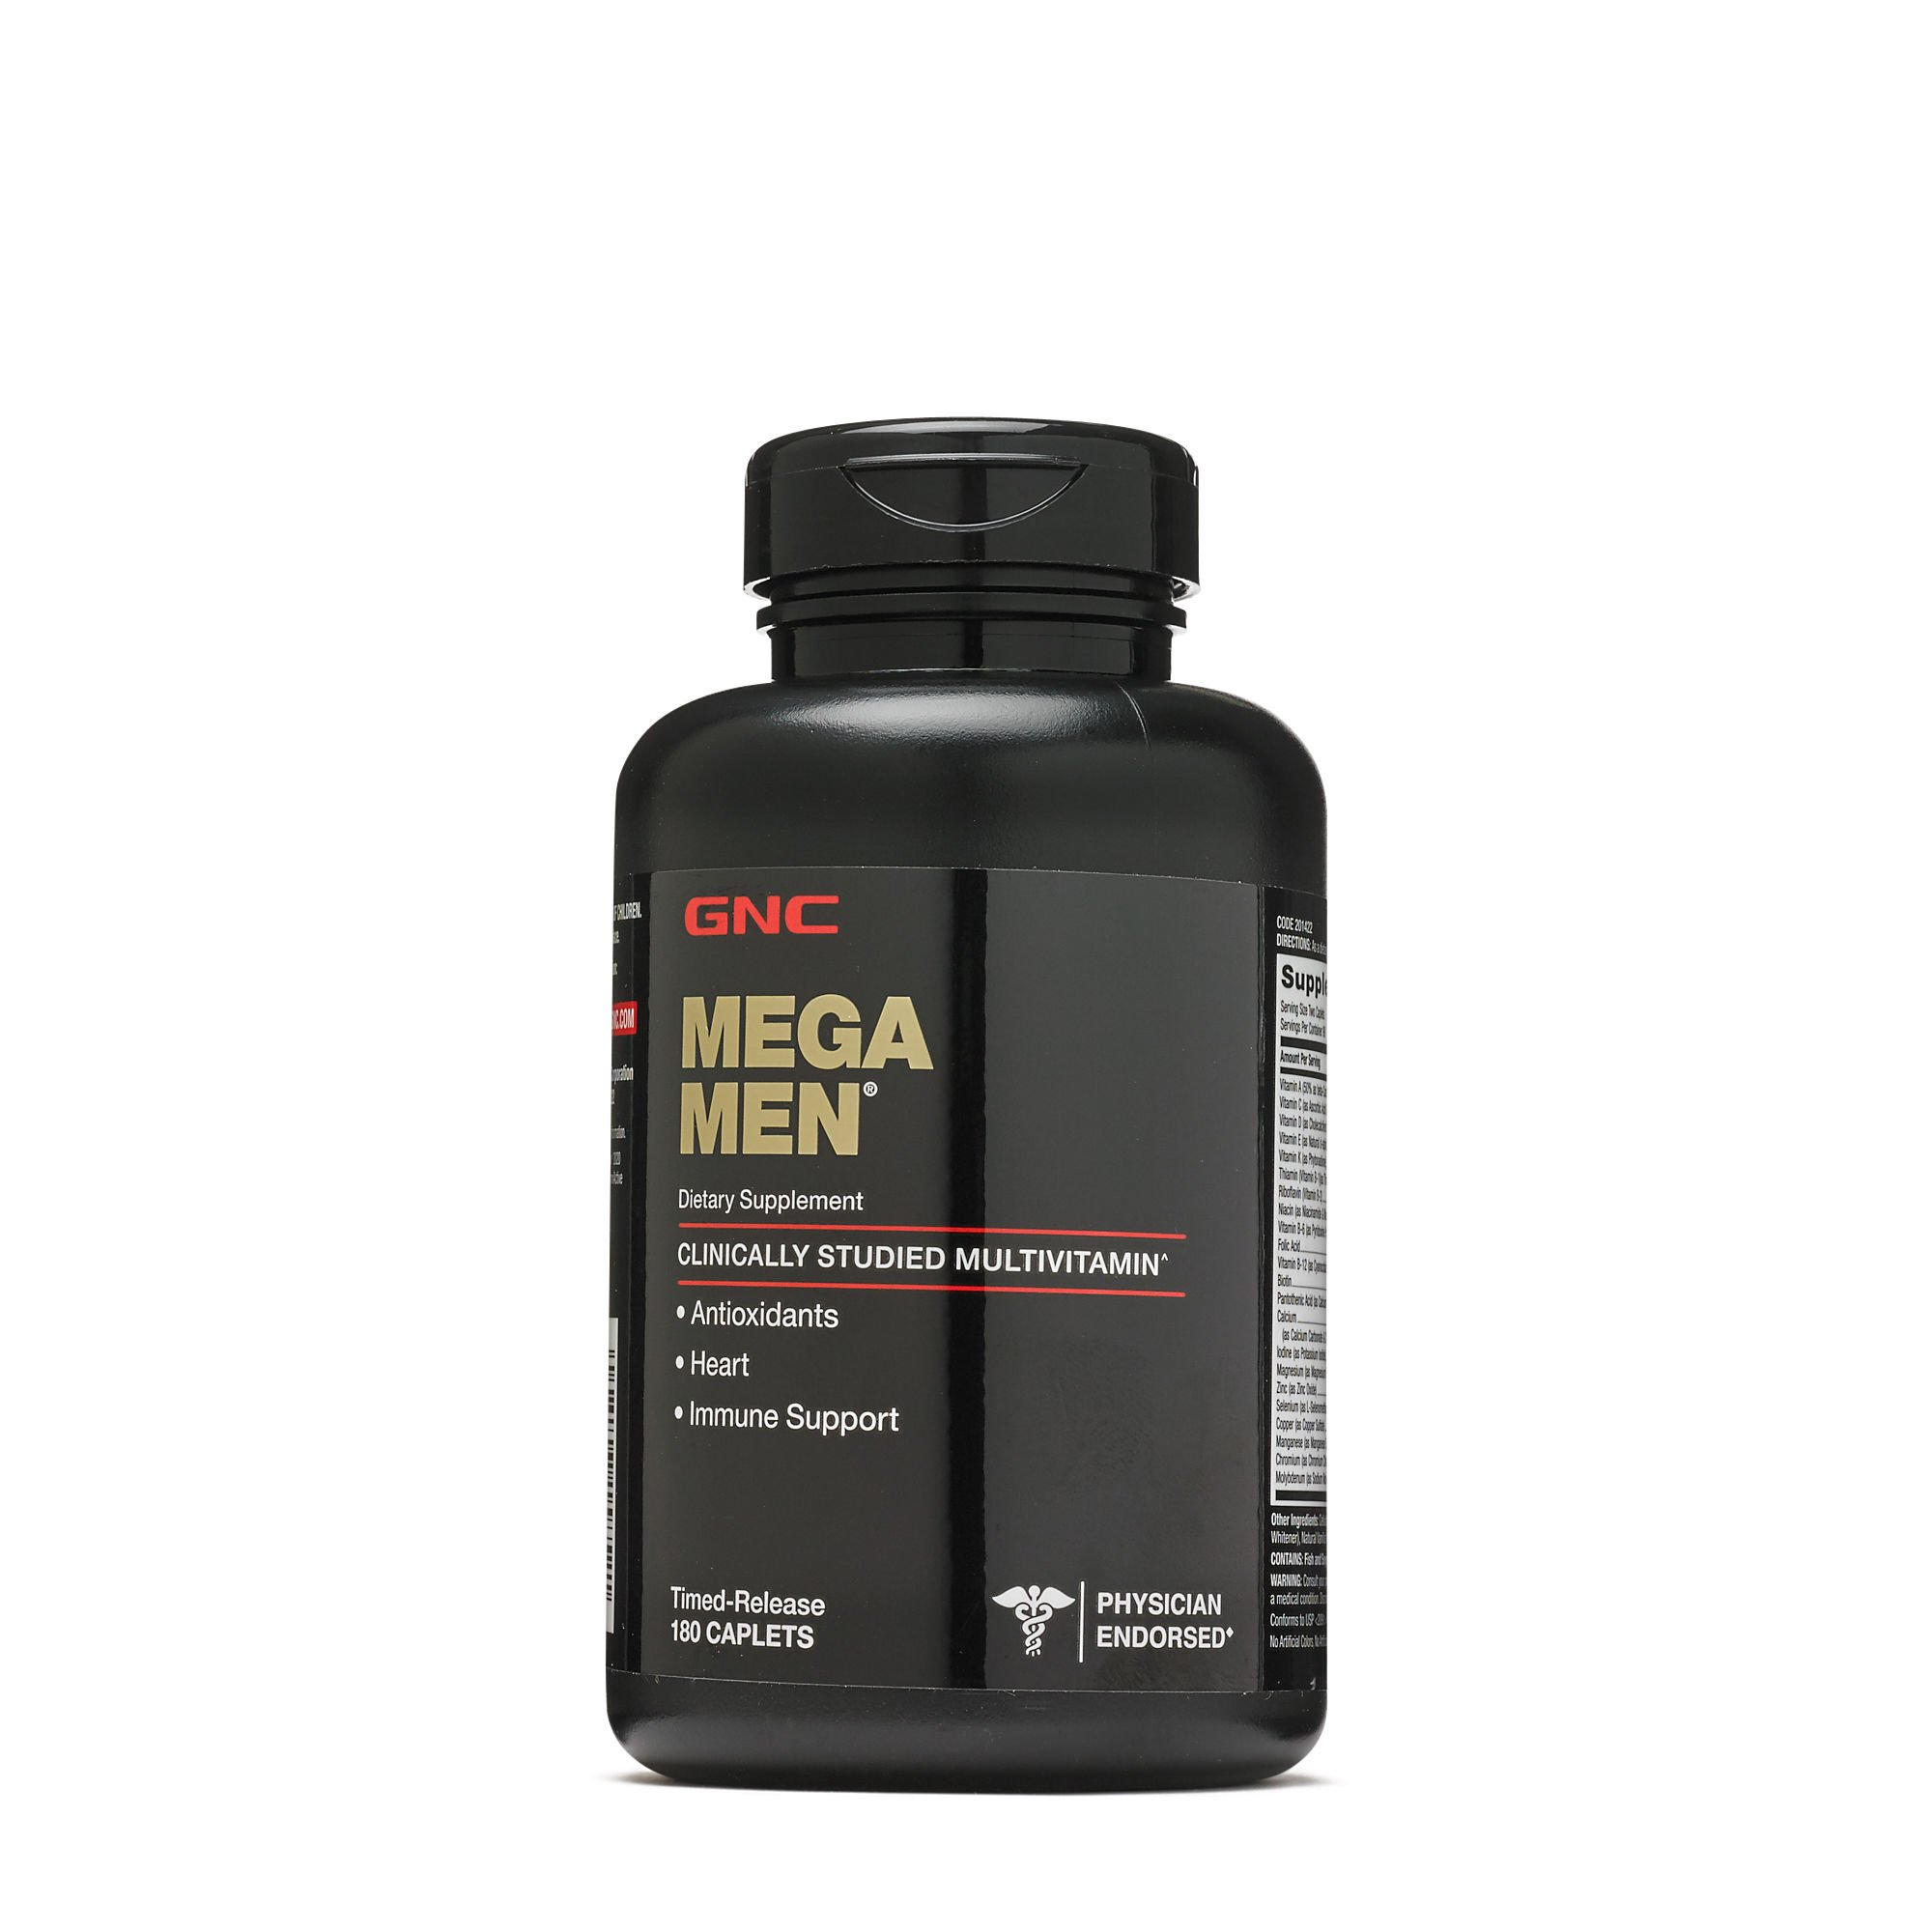 GNC Mega Men Multivitamin 180 Caplets